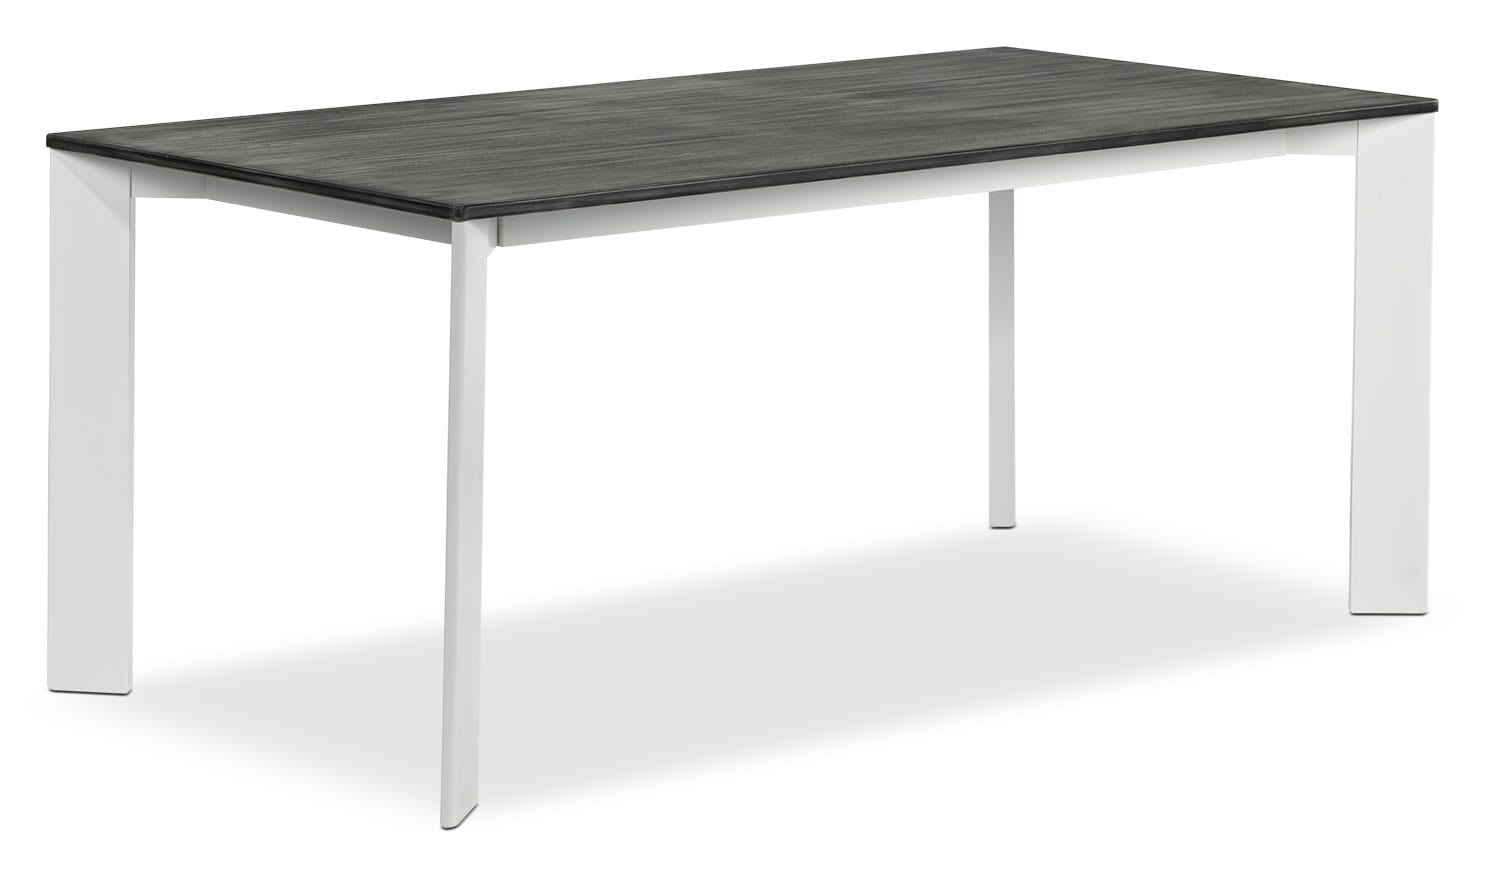 Dining Room Furniture - Christine Table - Grey and White